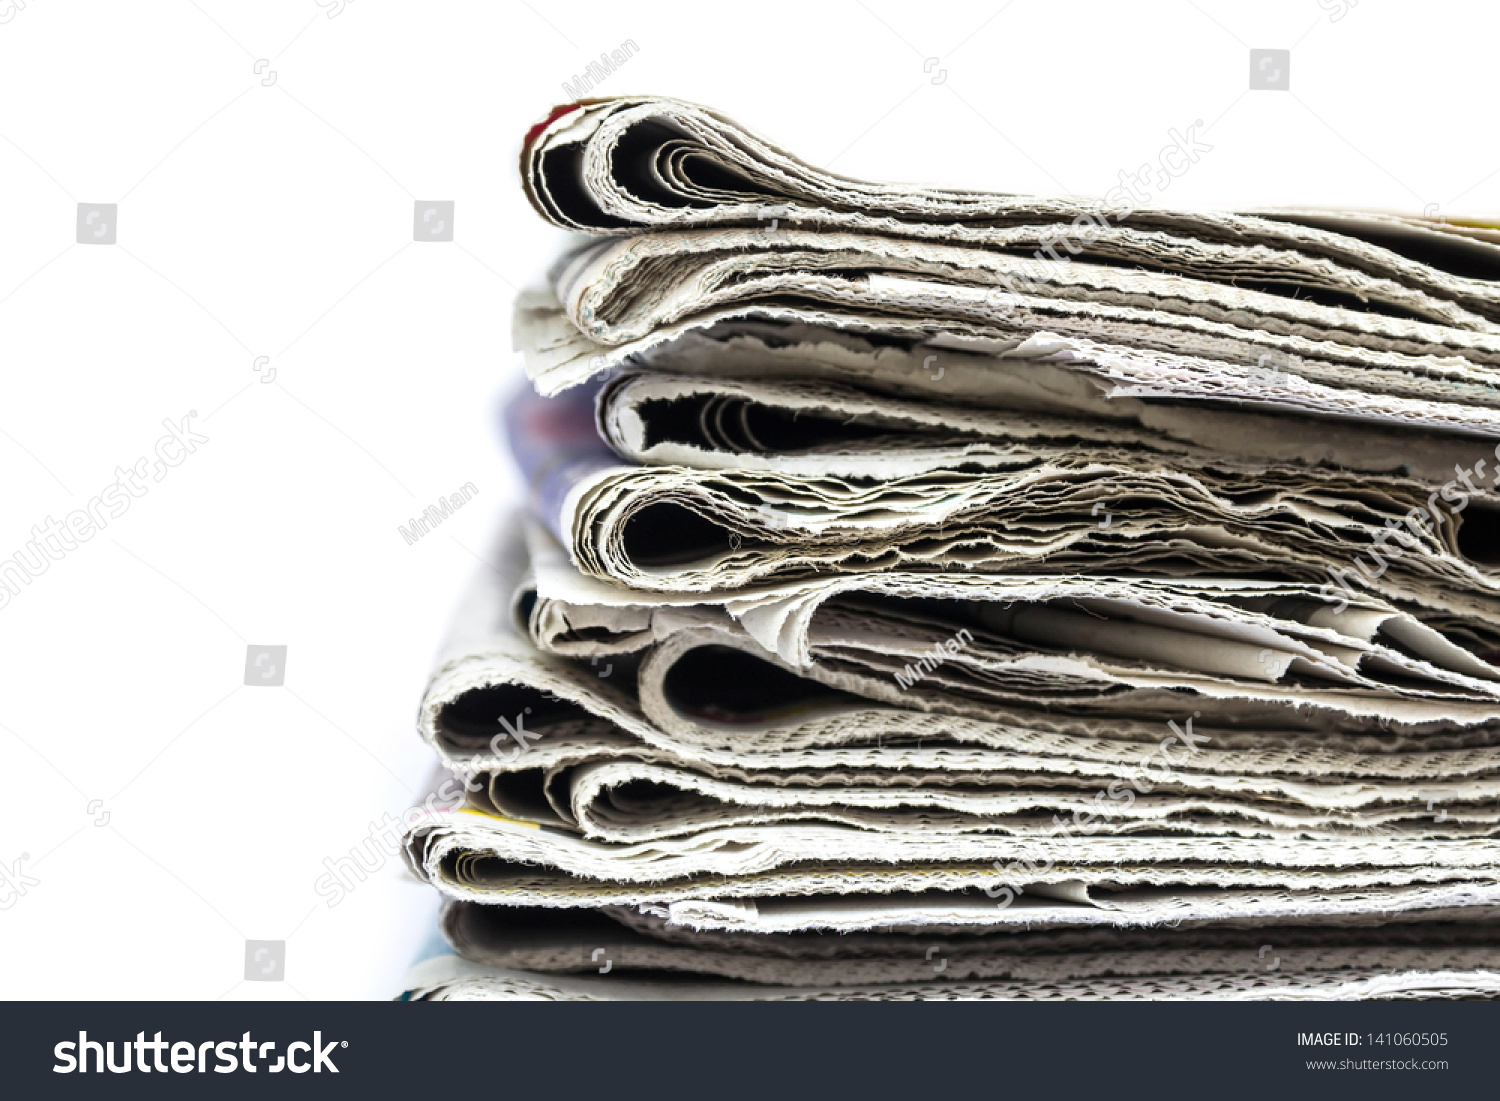 stack of newspapers isolated on white | ez canvas